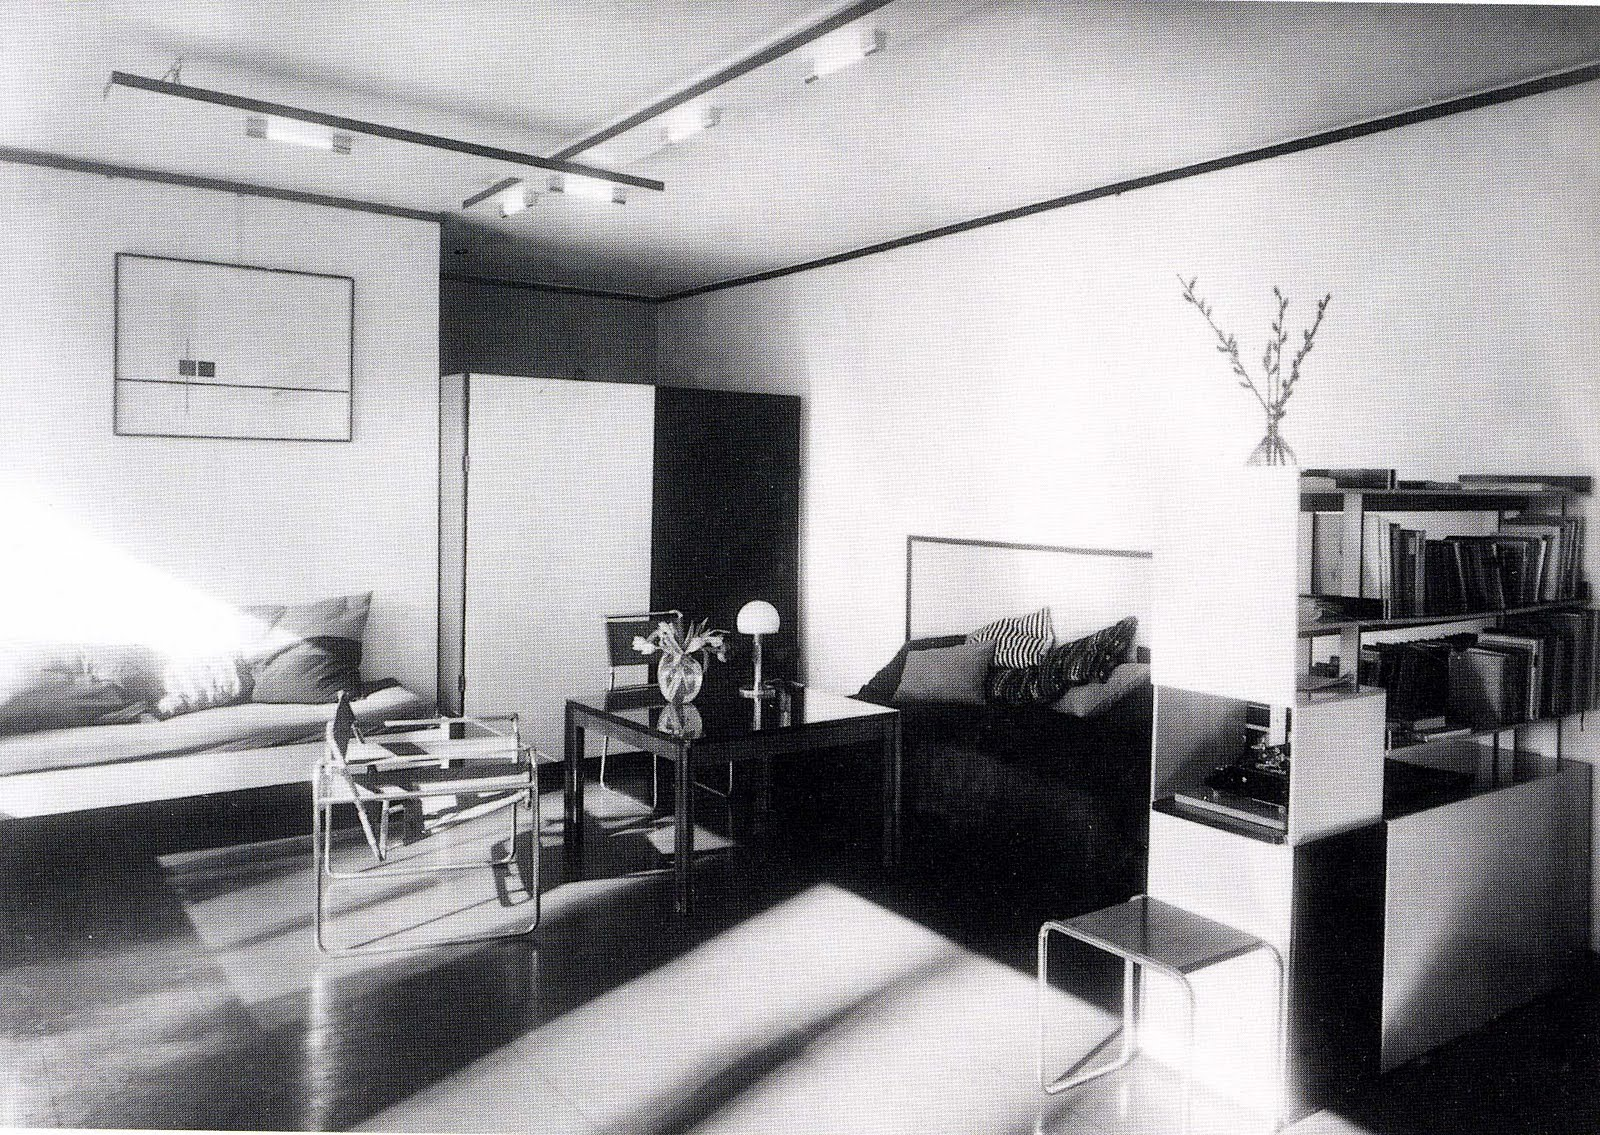 Faculty Apartment for Lazlo Moholy-Nagy, Bauhaus campus, Dessau  title=